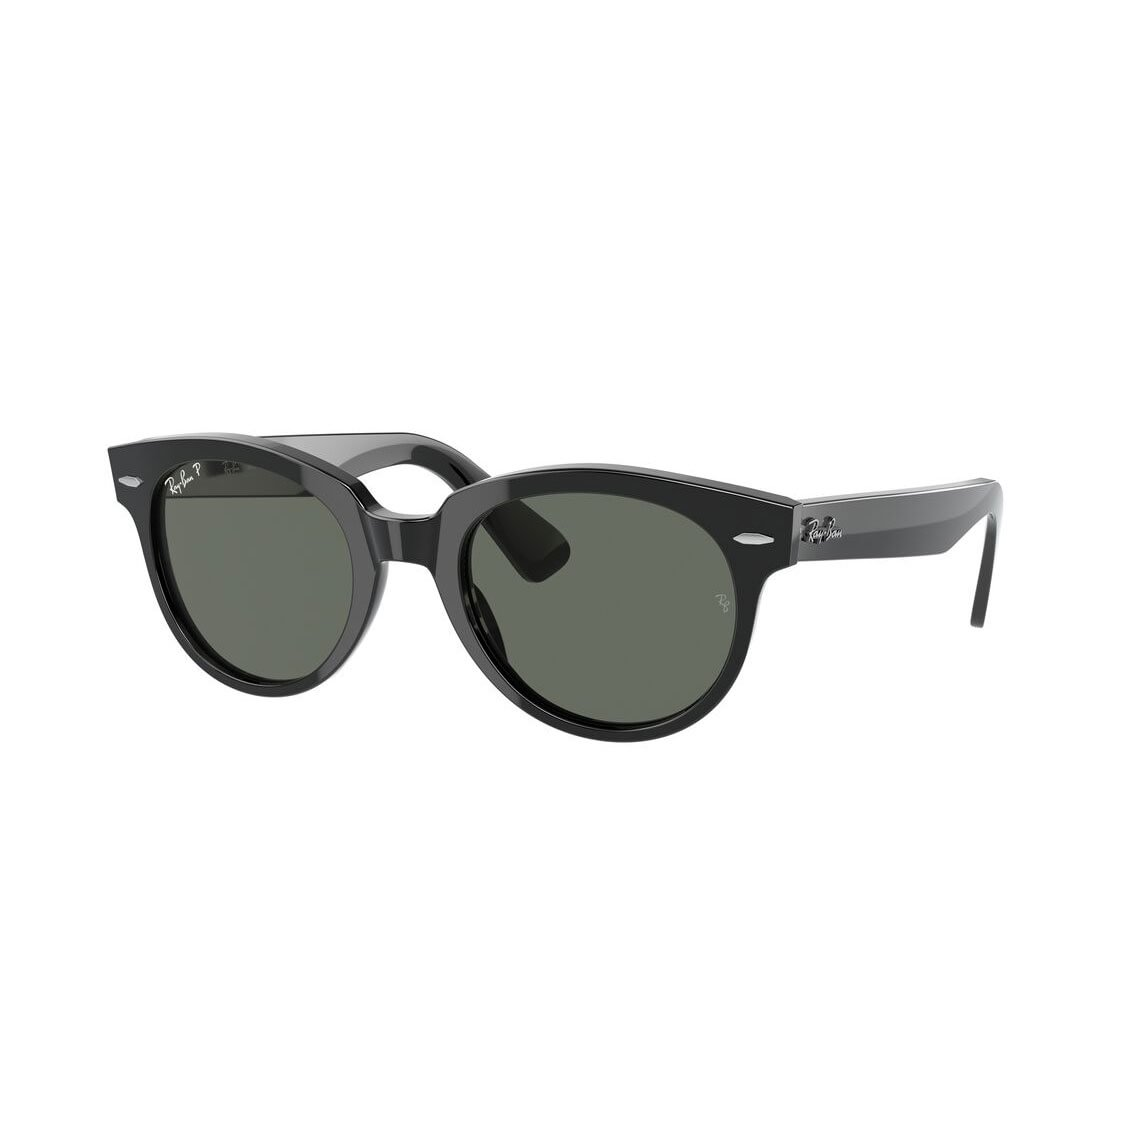 Ray-Ban Orion RB2199 901/58 5222